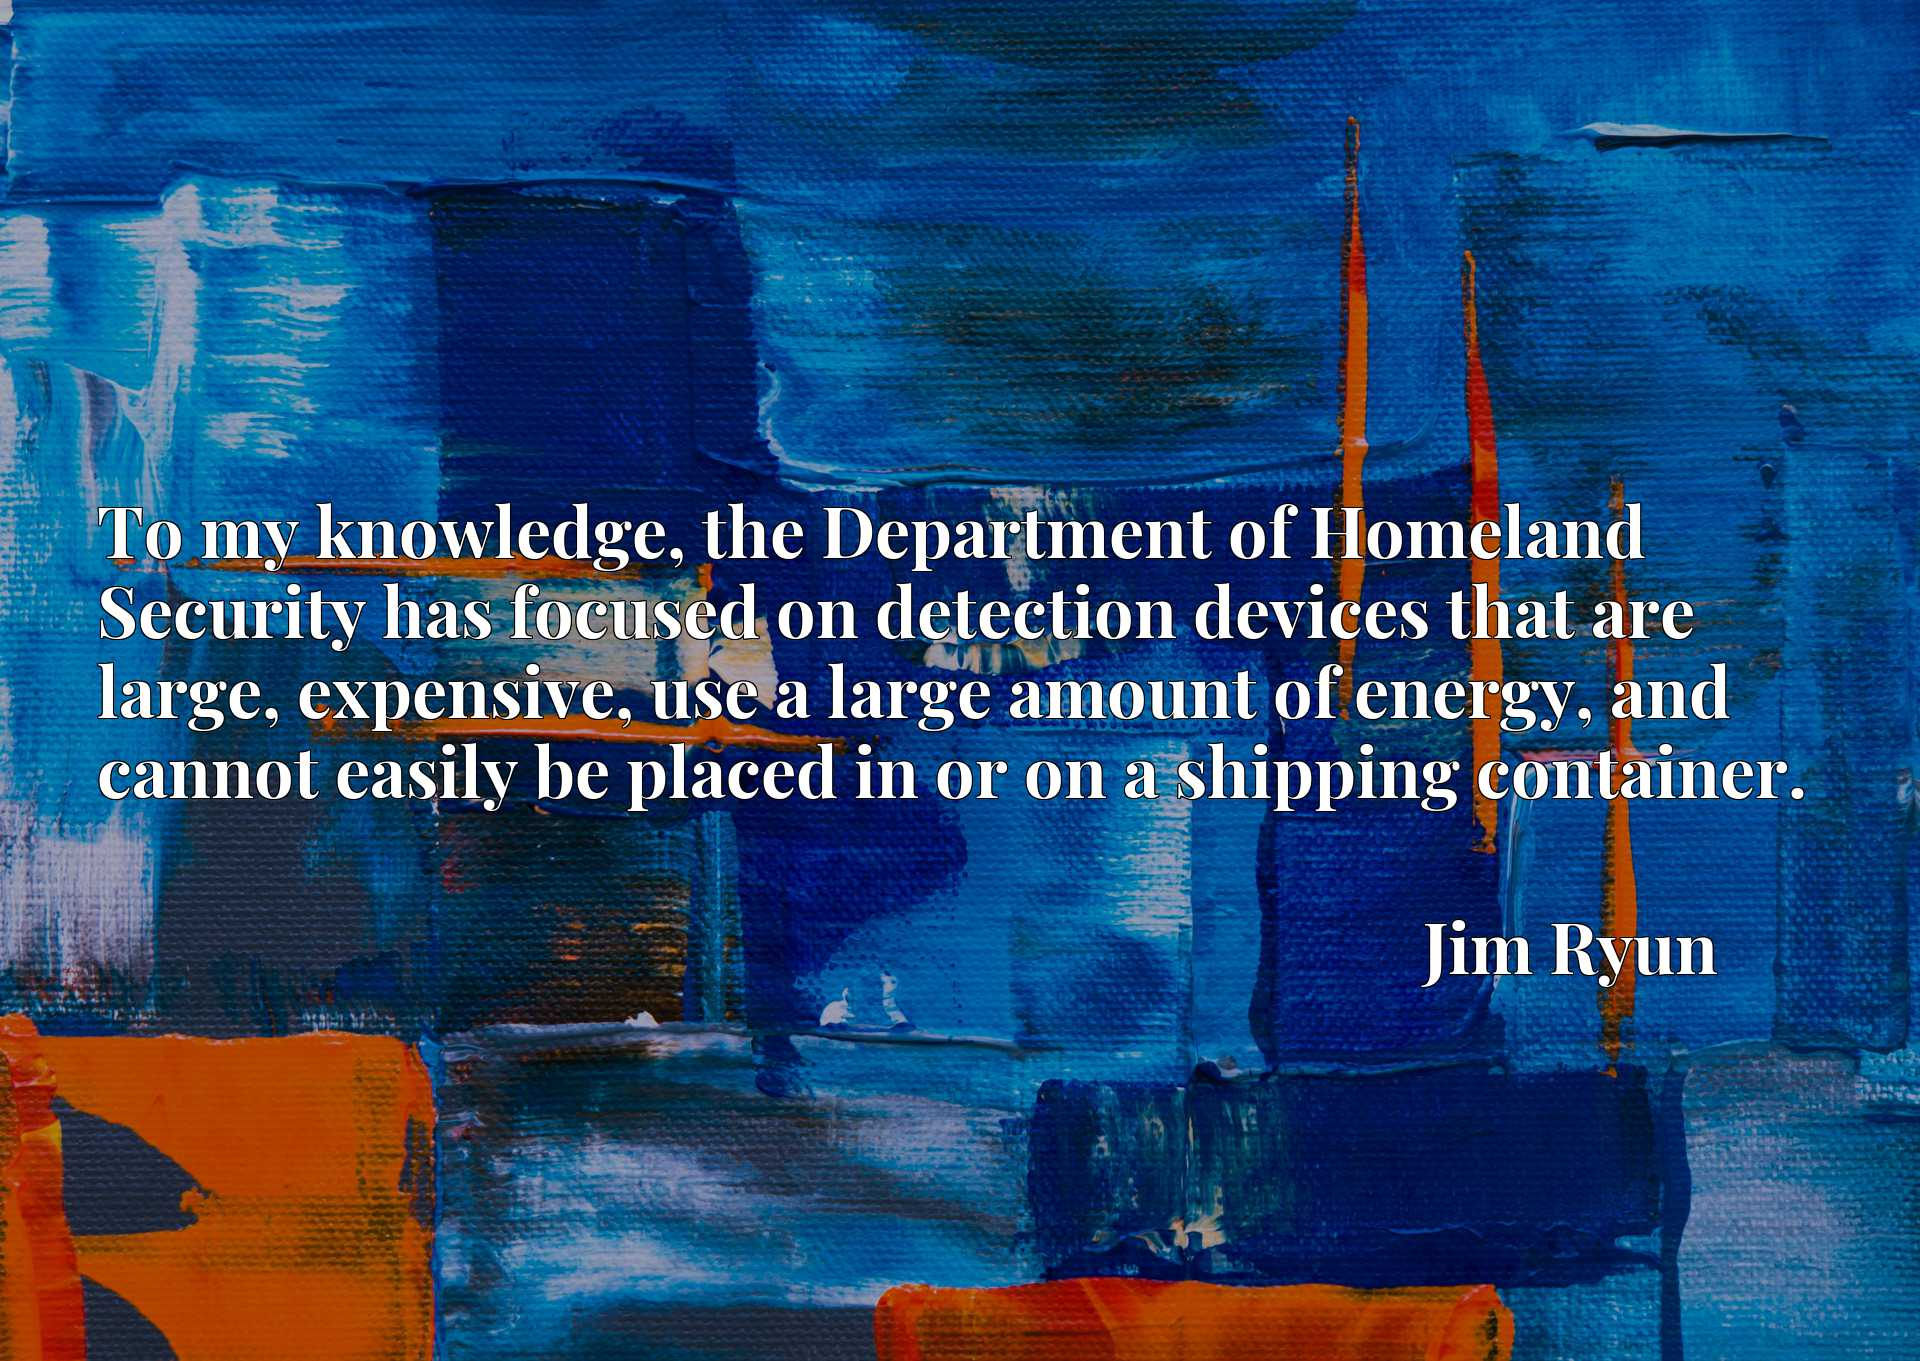 Quote Picture :To my knowledge, the Department of Homeland Security has focused on detection devices that are large, expensive, use a large amount of energy, and cannot easily be placed in or on a shipping container.